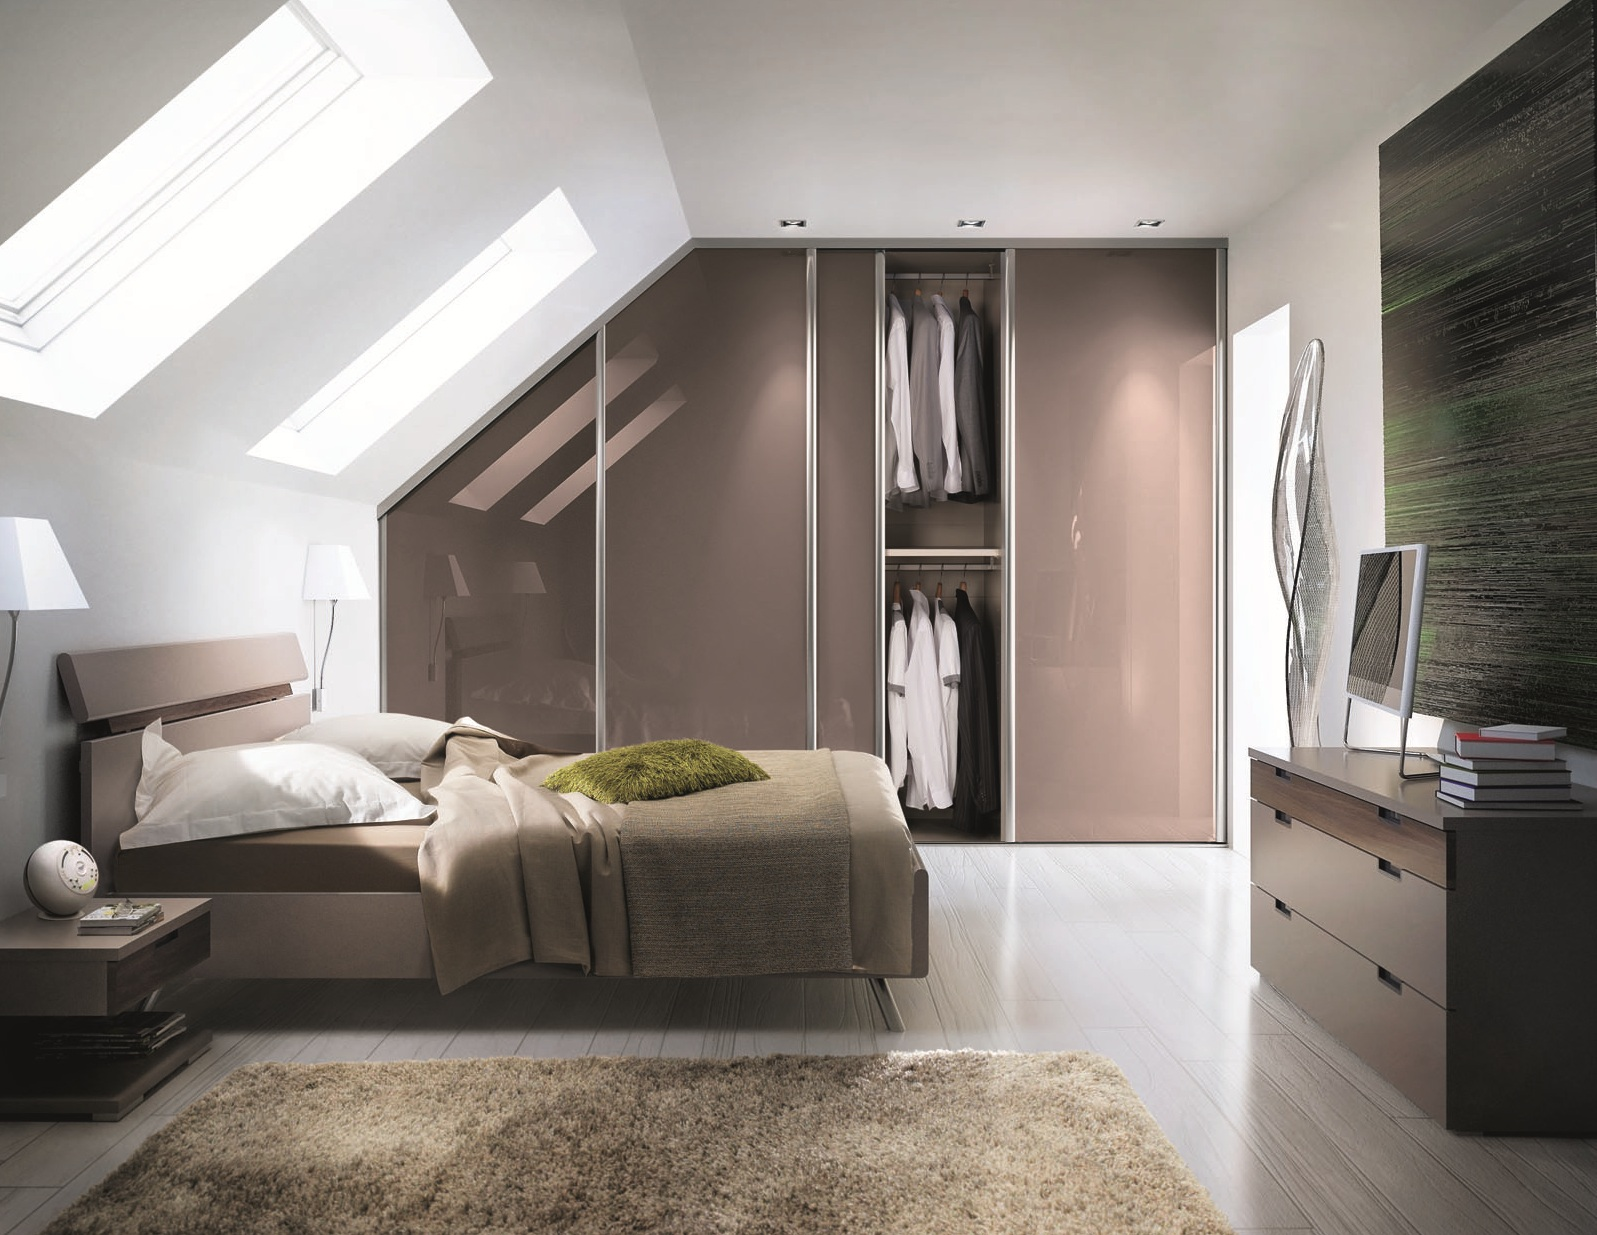 je d core mon appartement avec une armoire sur mesure. Black Bedroom Furniture Sets. Home Design Ideas